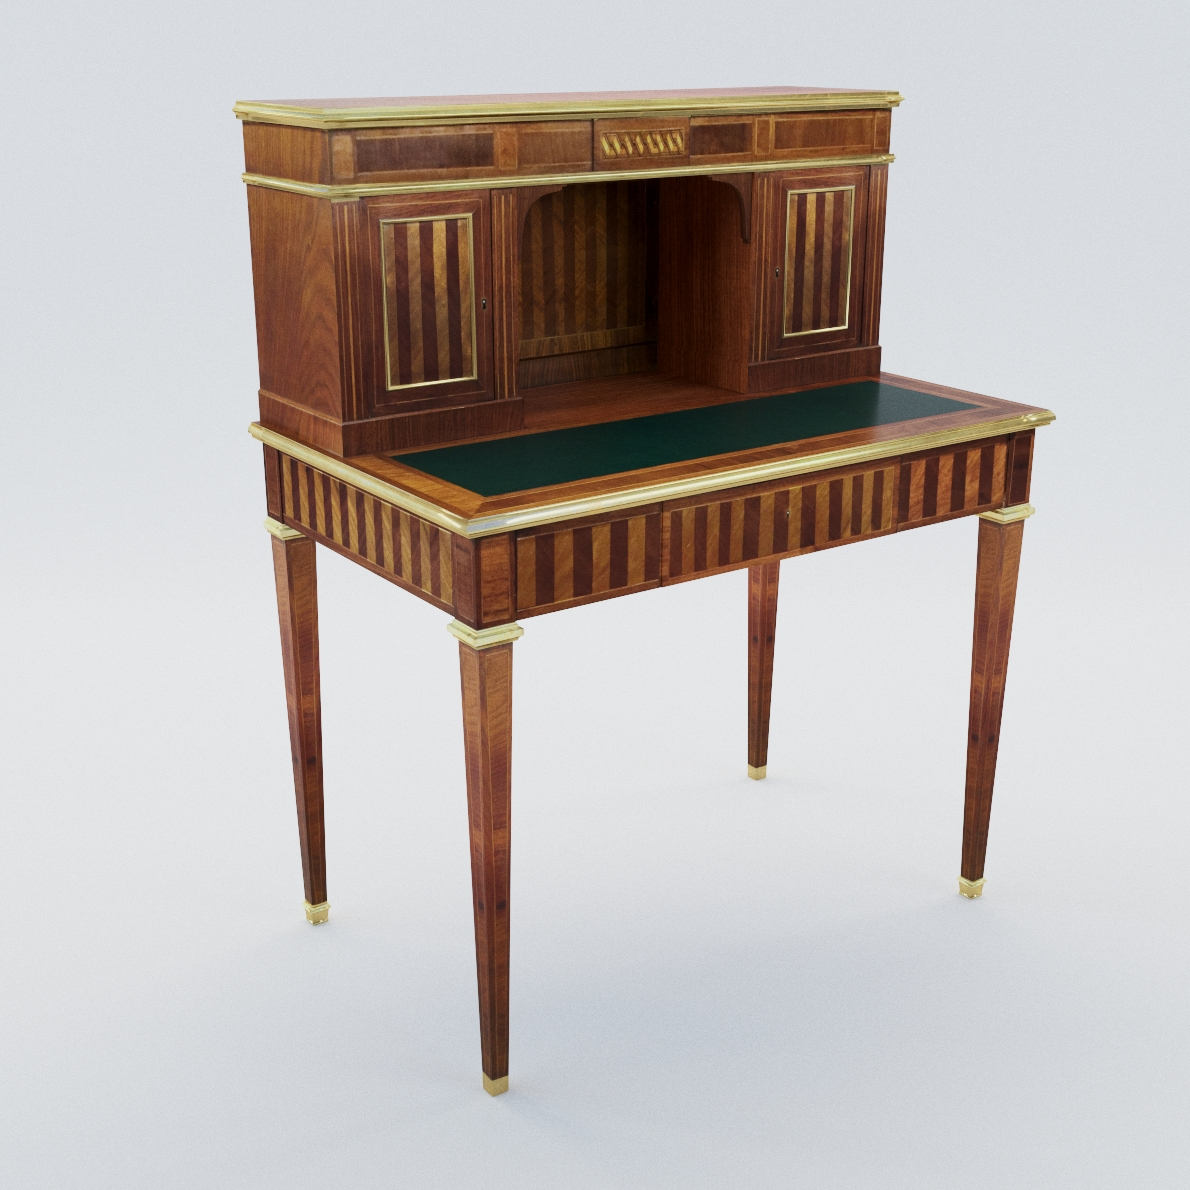 3d model Small secretaire of Louis XVI – France, 19. century